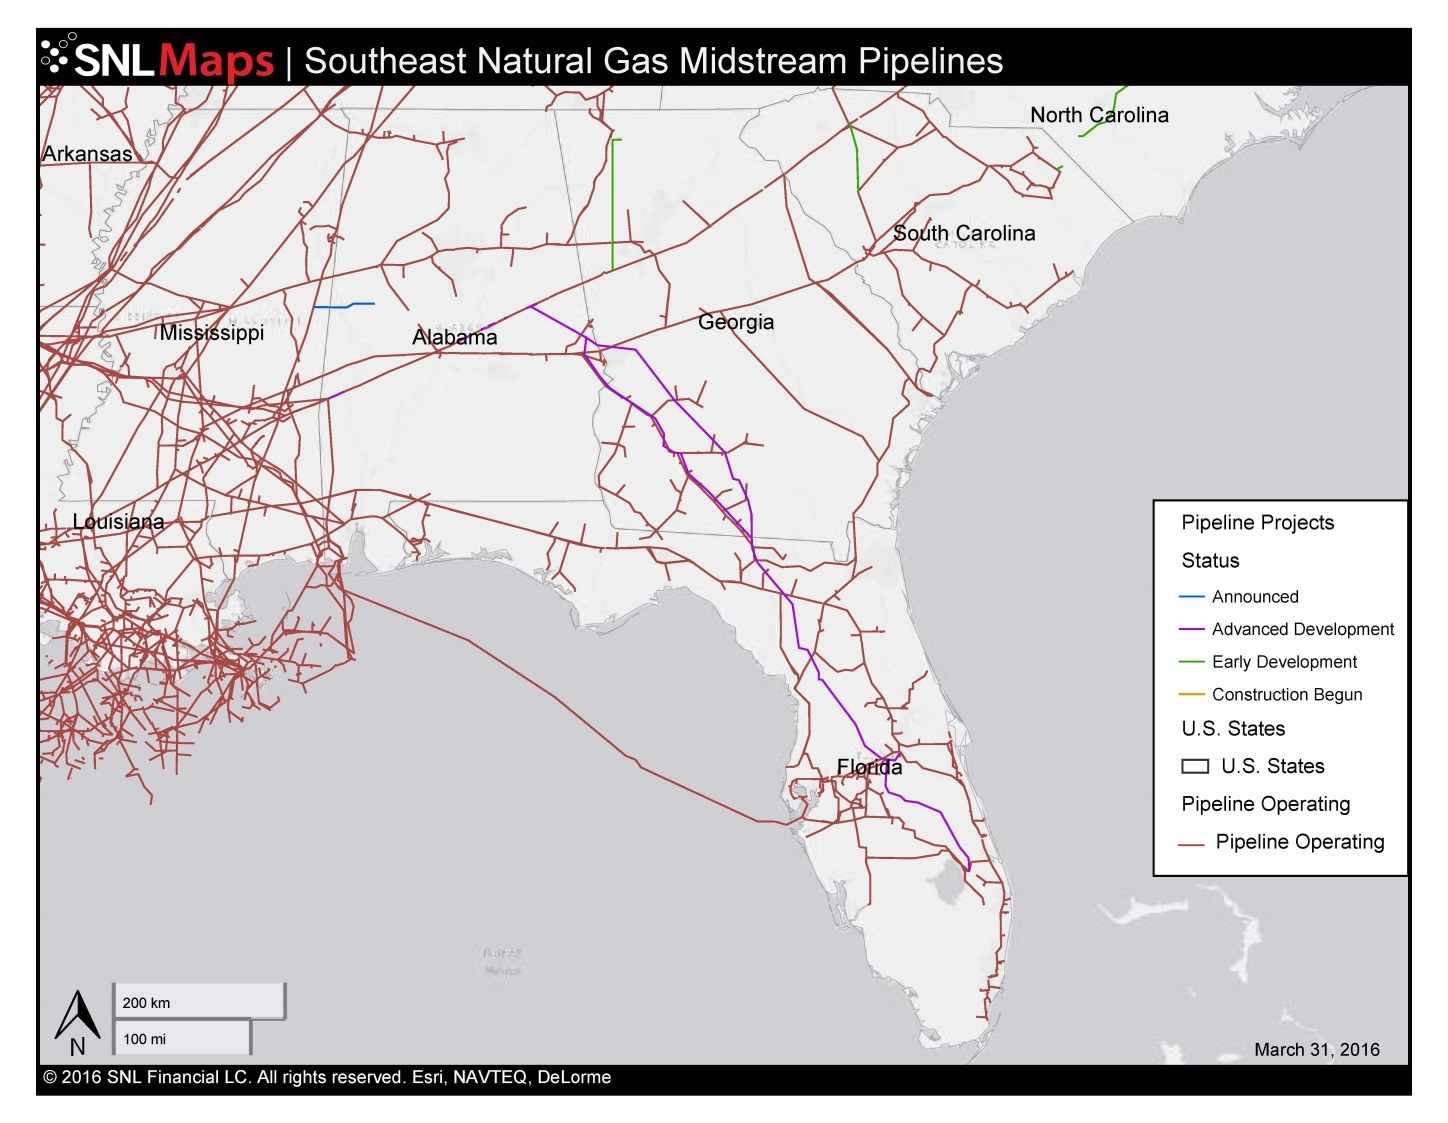 1448x1123 Map of Southeast Mid-Stream Natural Gas Pipelines, in Ensuring Sabal Trail compliance with LWCF, by Sierra Club, et al., for WWALS.net, 12 April 2016